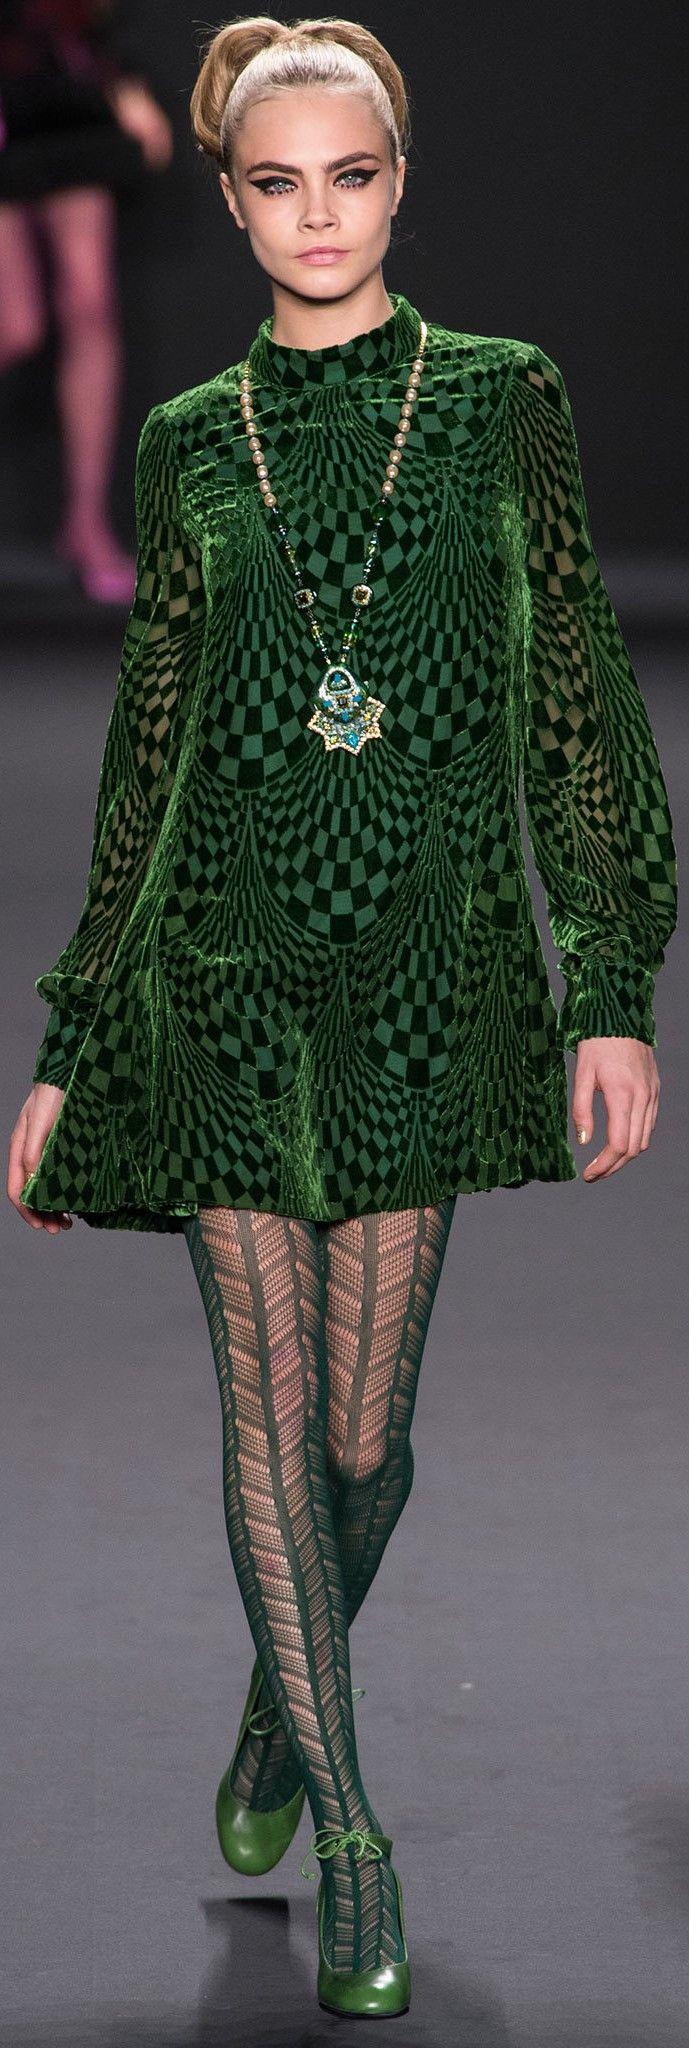 Oh this dress reminds me of something Twiggy would have worn in the 60's!  Love it! Anna Sui